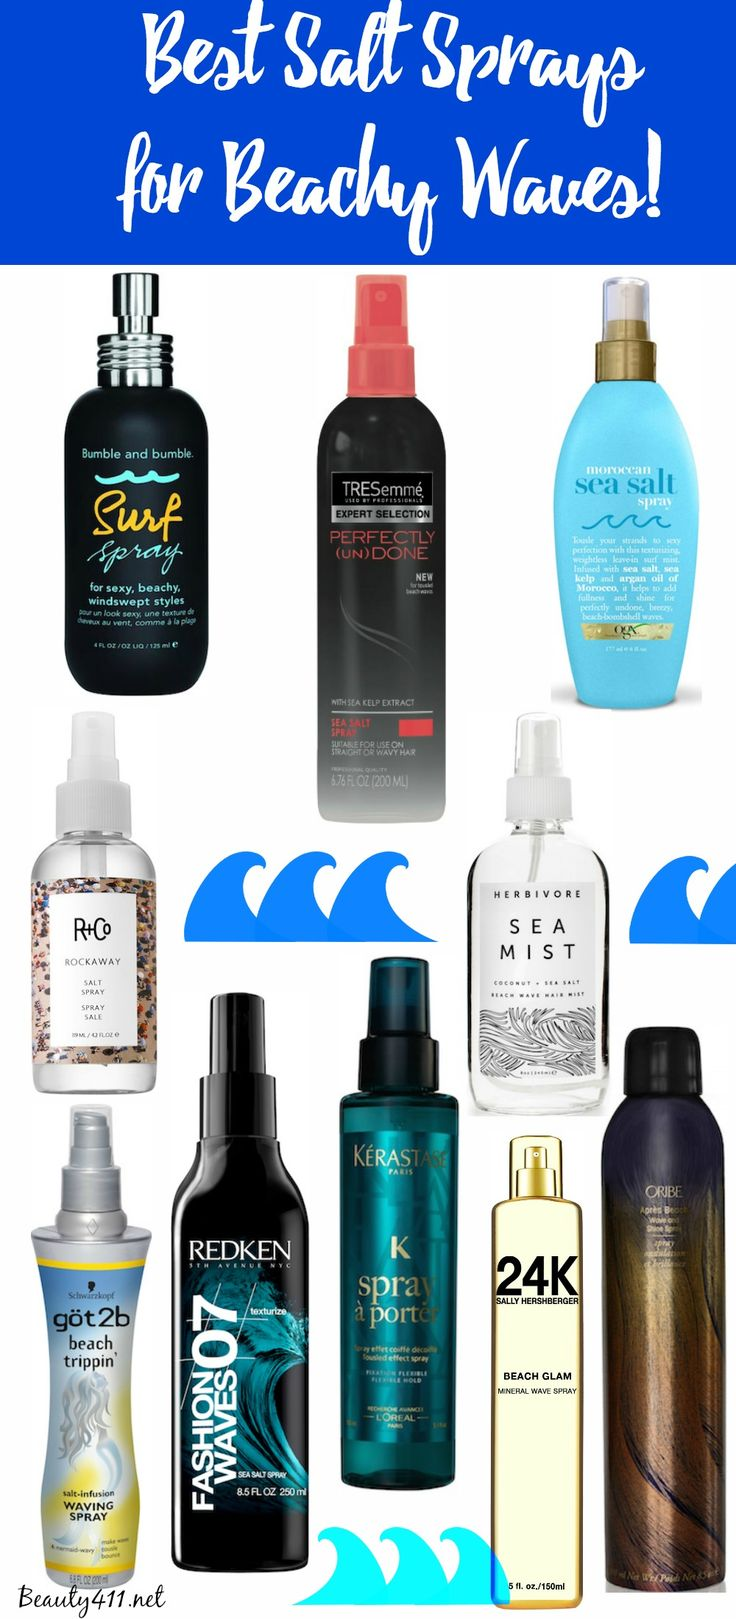 If bombshell beachy waves are your thing, a sea salt spray is an essential. The effortless waves made popular by Blake Lively and Giselle do require some (if minimal) effort. But how to choose betw…